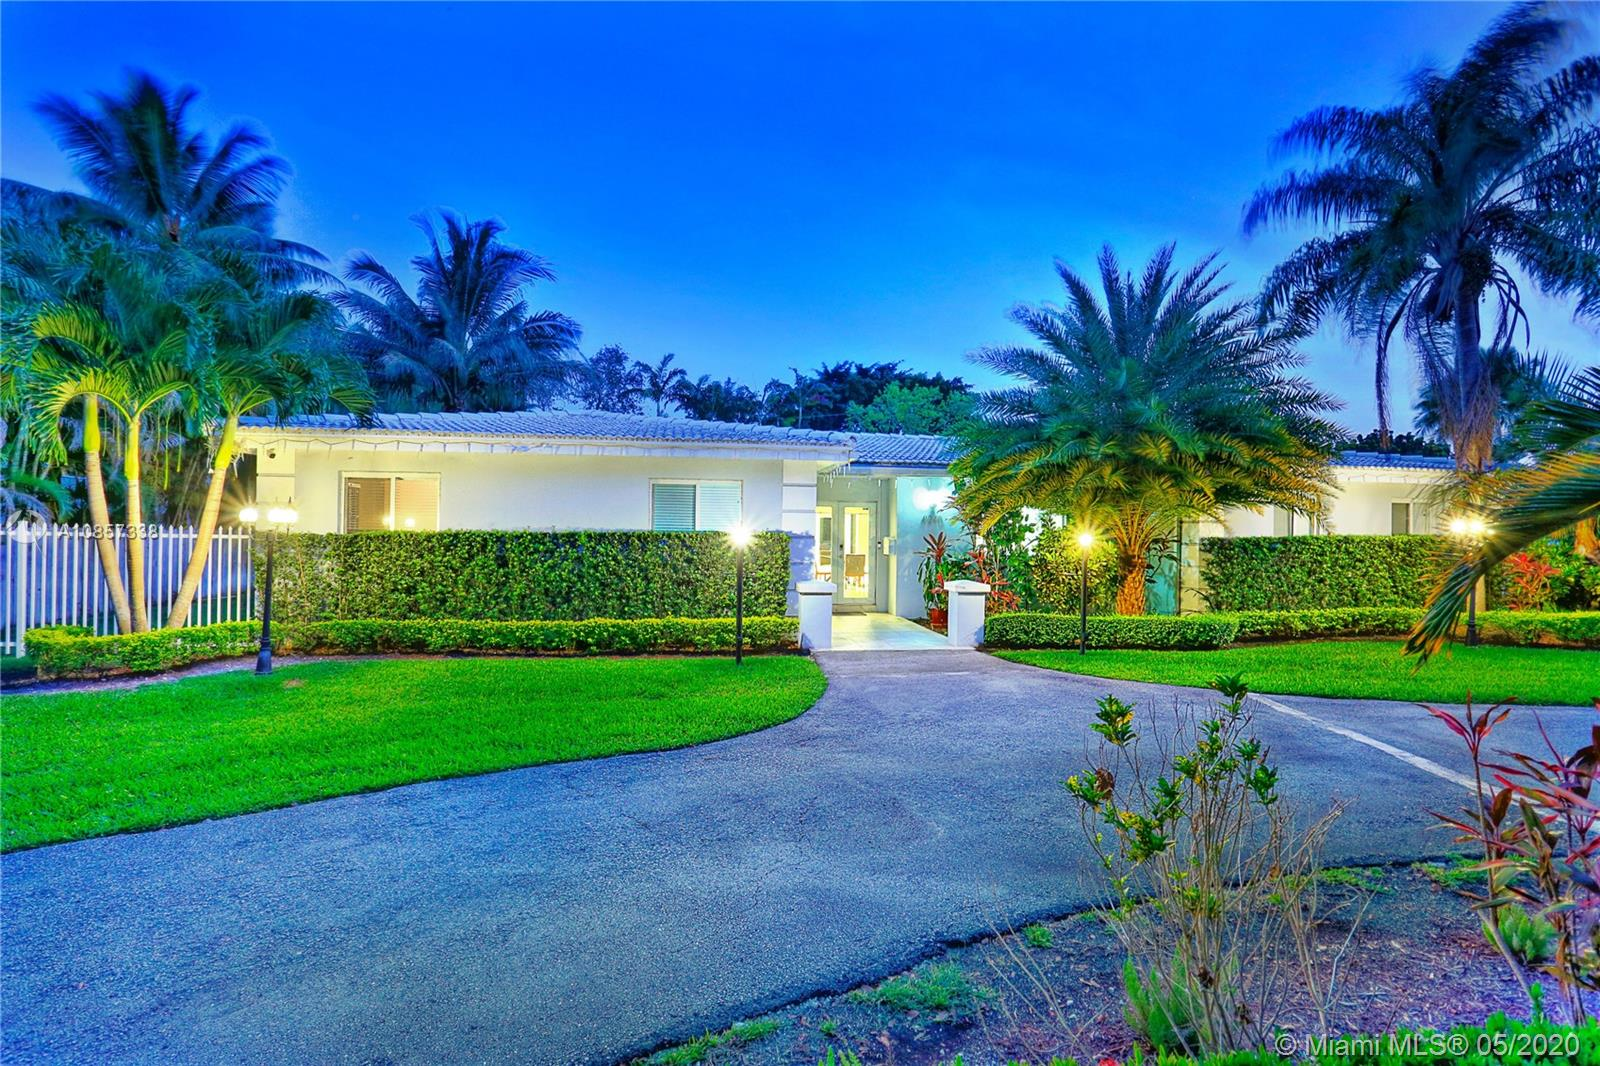 8240 SW 152nd St, Palmetto Bay, Florida 33157, 5 Bedrooms Bedrooms, ,3 BathroomsBathrooms,Residential,For Sale,8240 SW 152nd St,A10857338